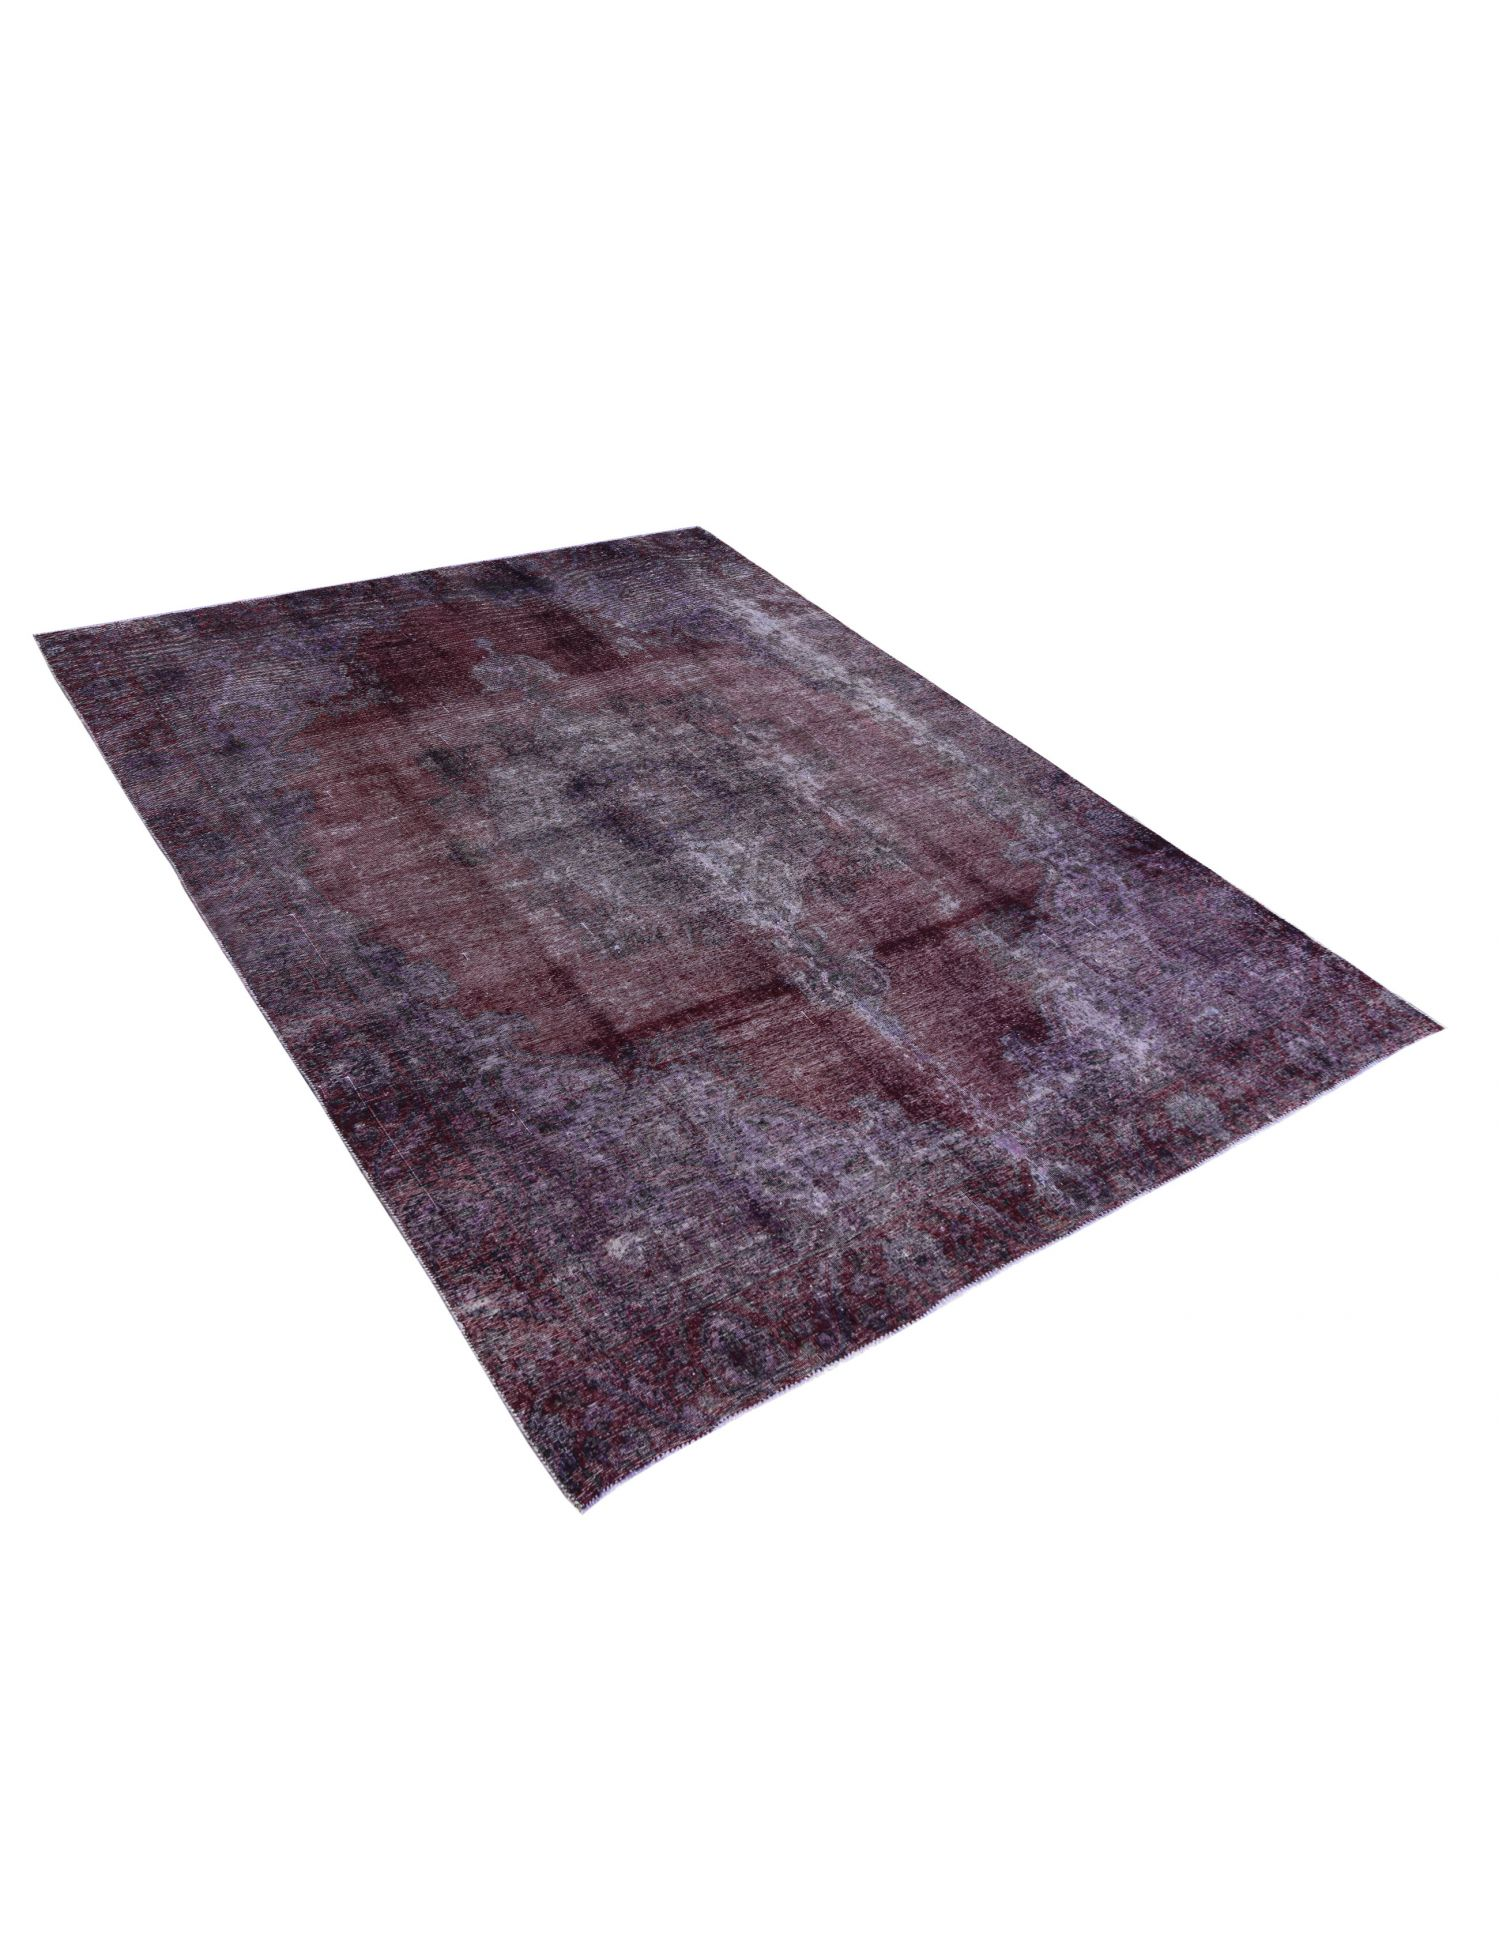 Vintage Carpet  purple <br/>361 x 270 cm